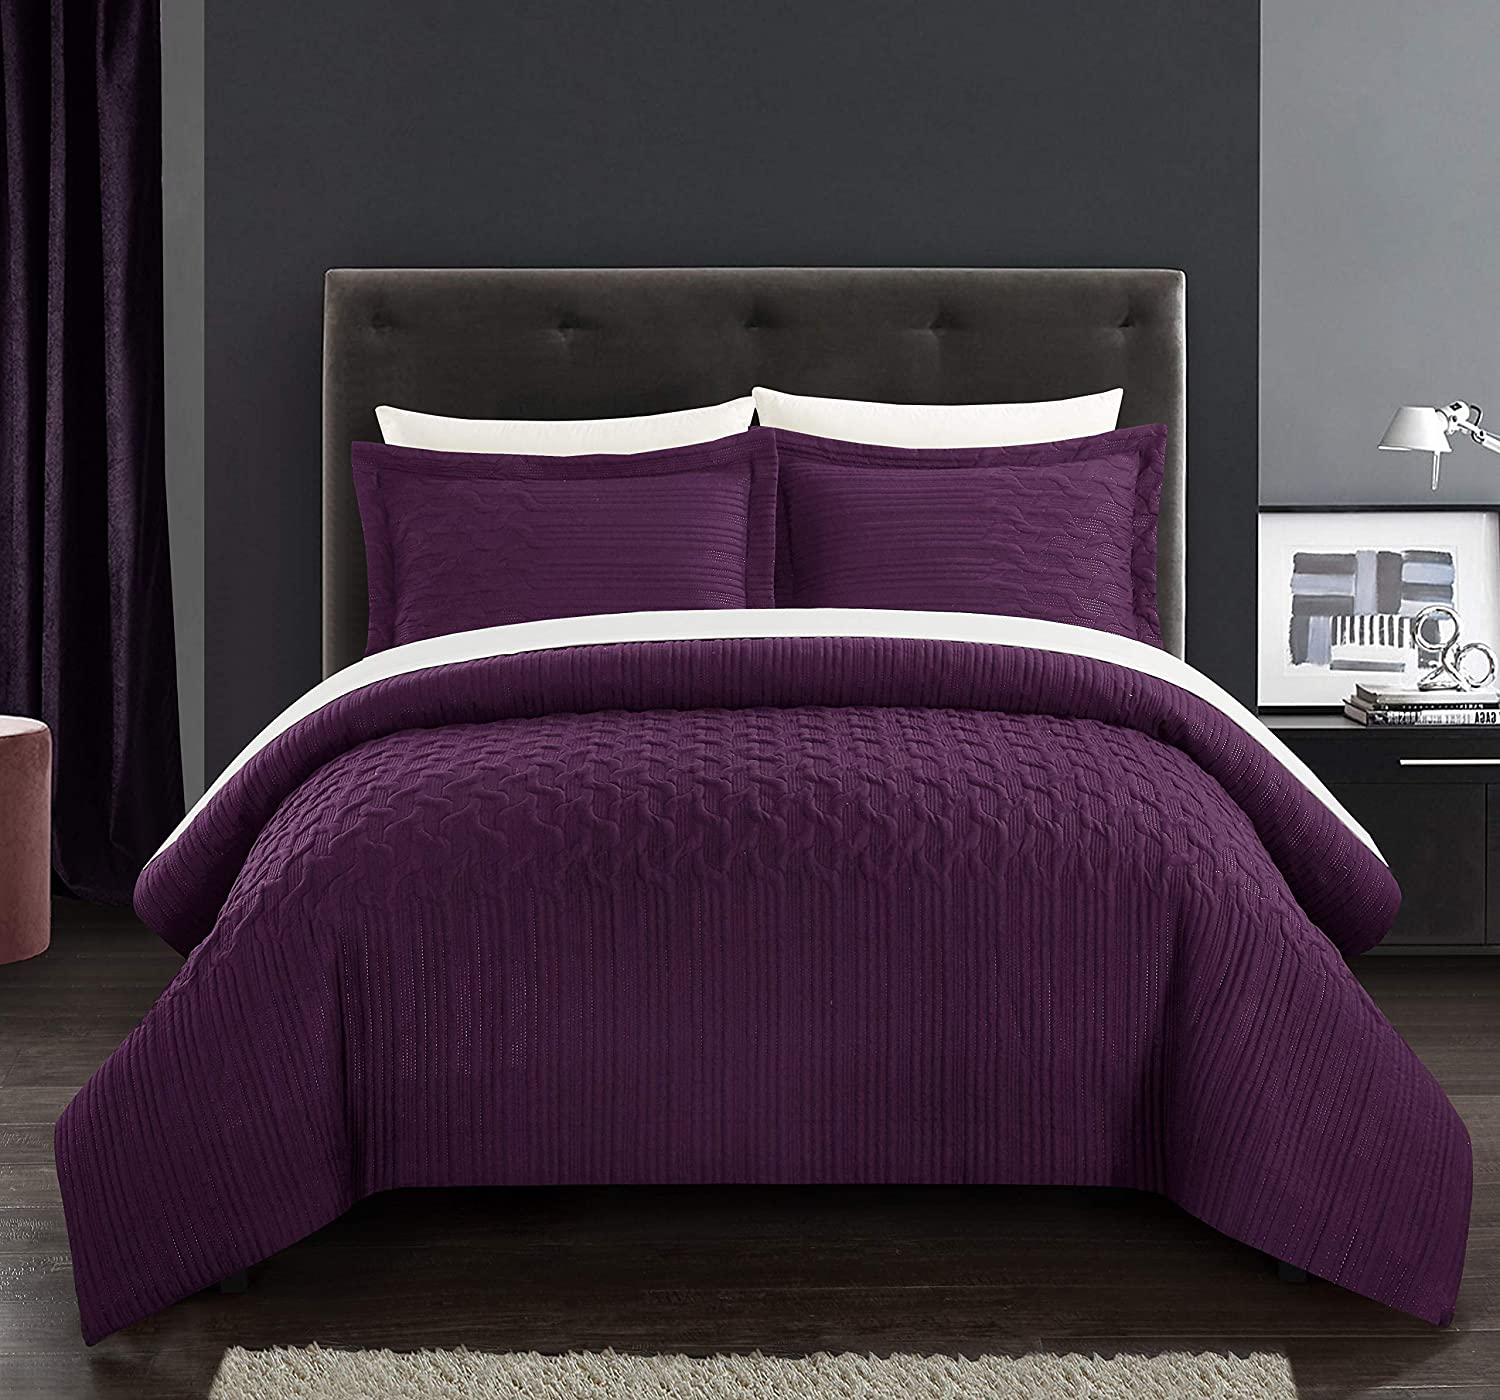 Chic Home Jazmine 3 Piece Comforter Set Embossed Embroidered Quilted Geometric Vine Pattern Bedding - Pillow Shams Included, Queen, Plum